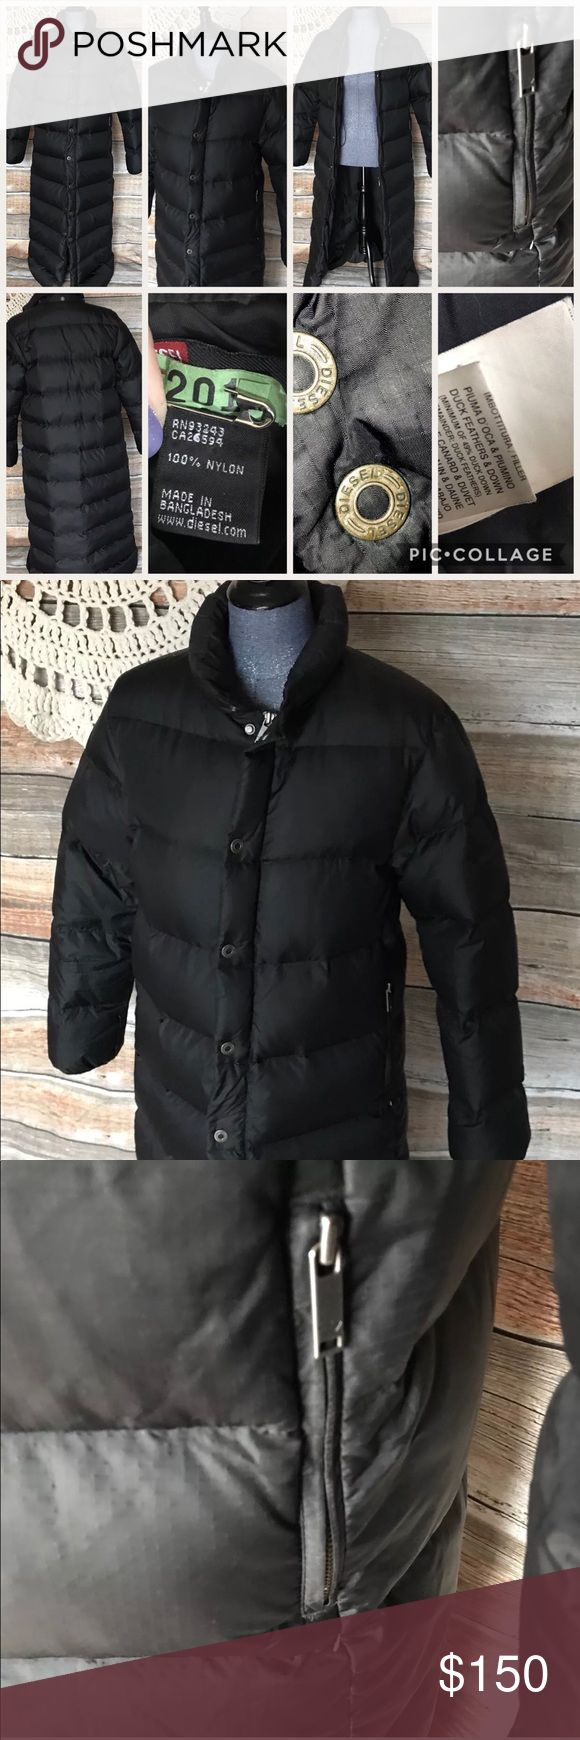 "Diesel Puffer long Duck Down Black Coat Trench Size Large  Measurements would accommodate a size 10/12 lady.  Solid Black  Retailed for $800   Full length puffer goose/duck down  Diesel Coat  There are cinch cords to help adjust the fit of the waist,  Extremely warm!  Zips & Snaps  Low price reflects missing hood.  Keep in mind that this designer brand runs small:  (((Measurements are as follows)))  Shoulder to Shoulder seam:17""  Bust:40""  Waist:40""  Hips:42""  Length:55""  No rips or stains…"